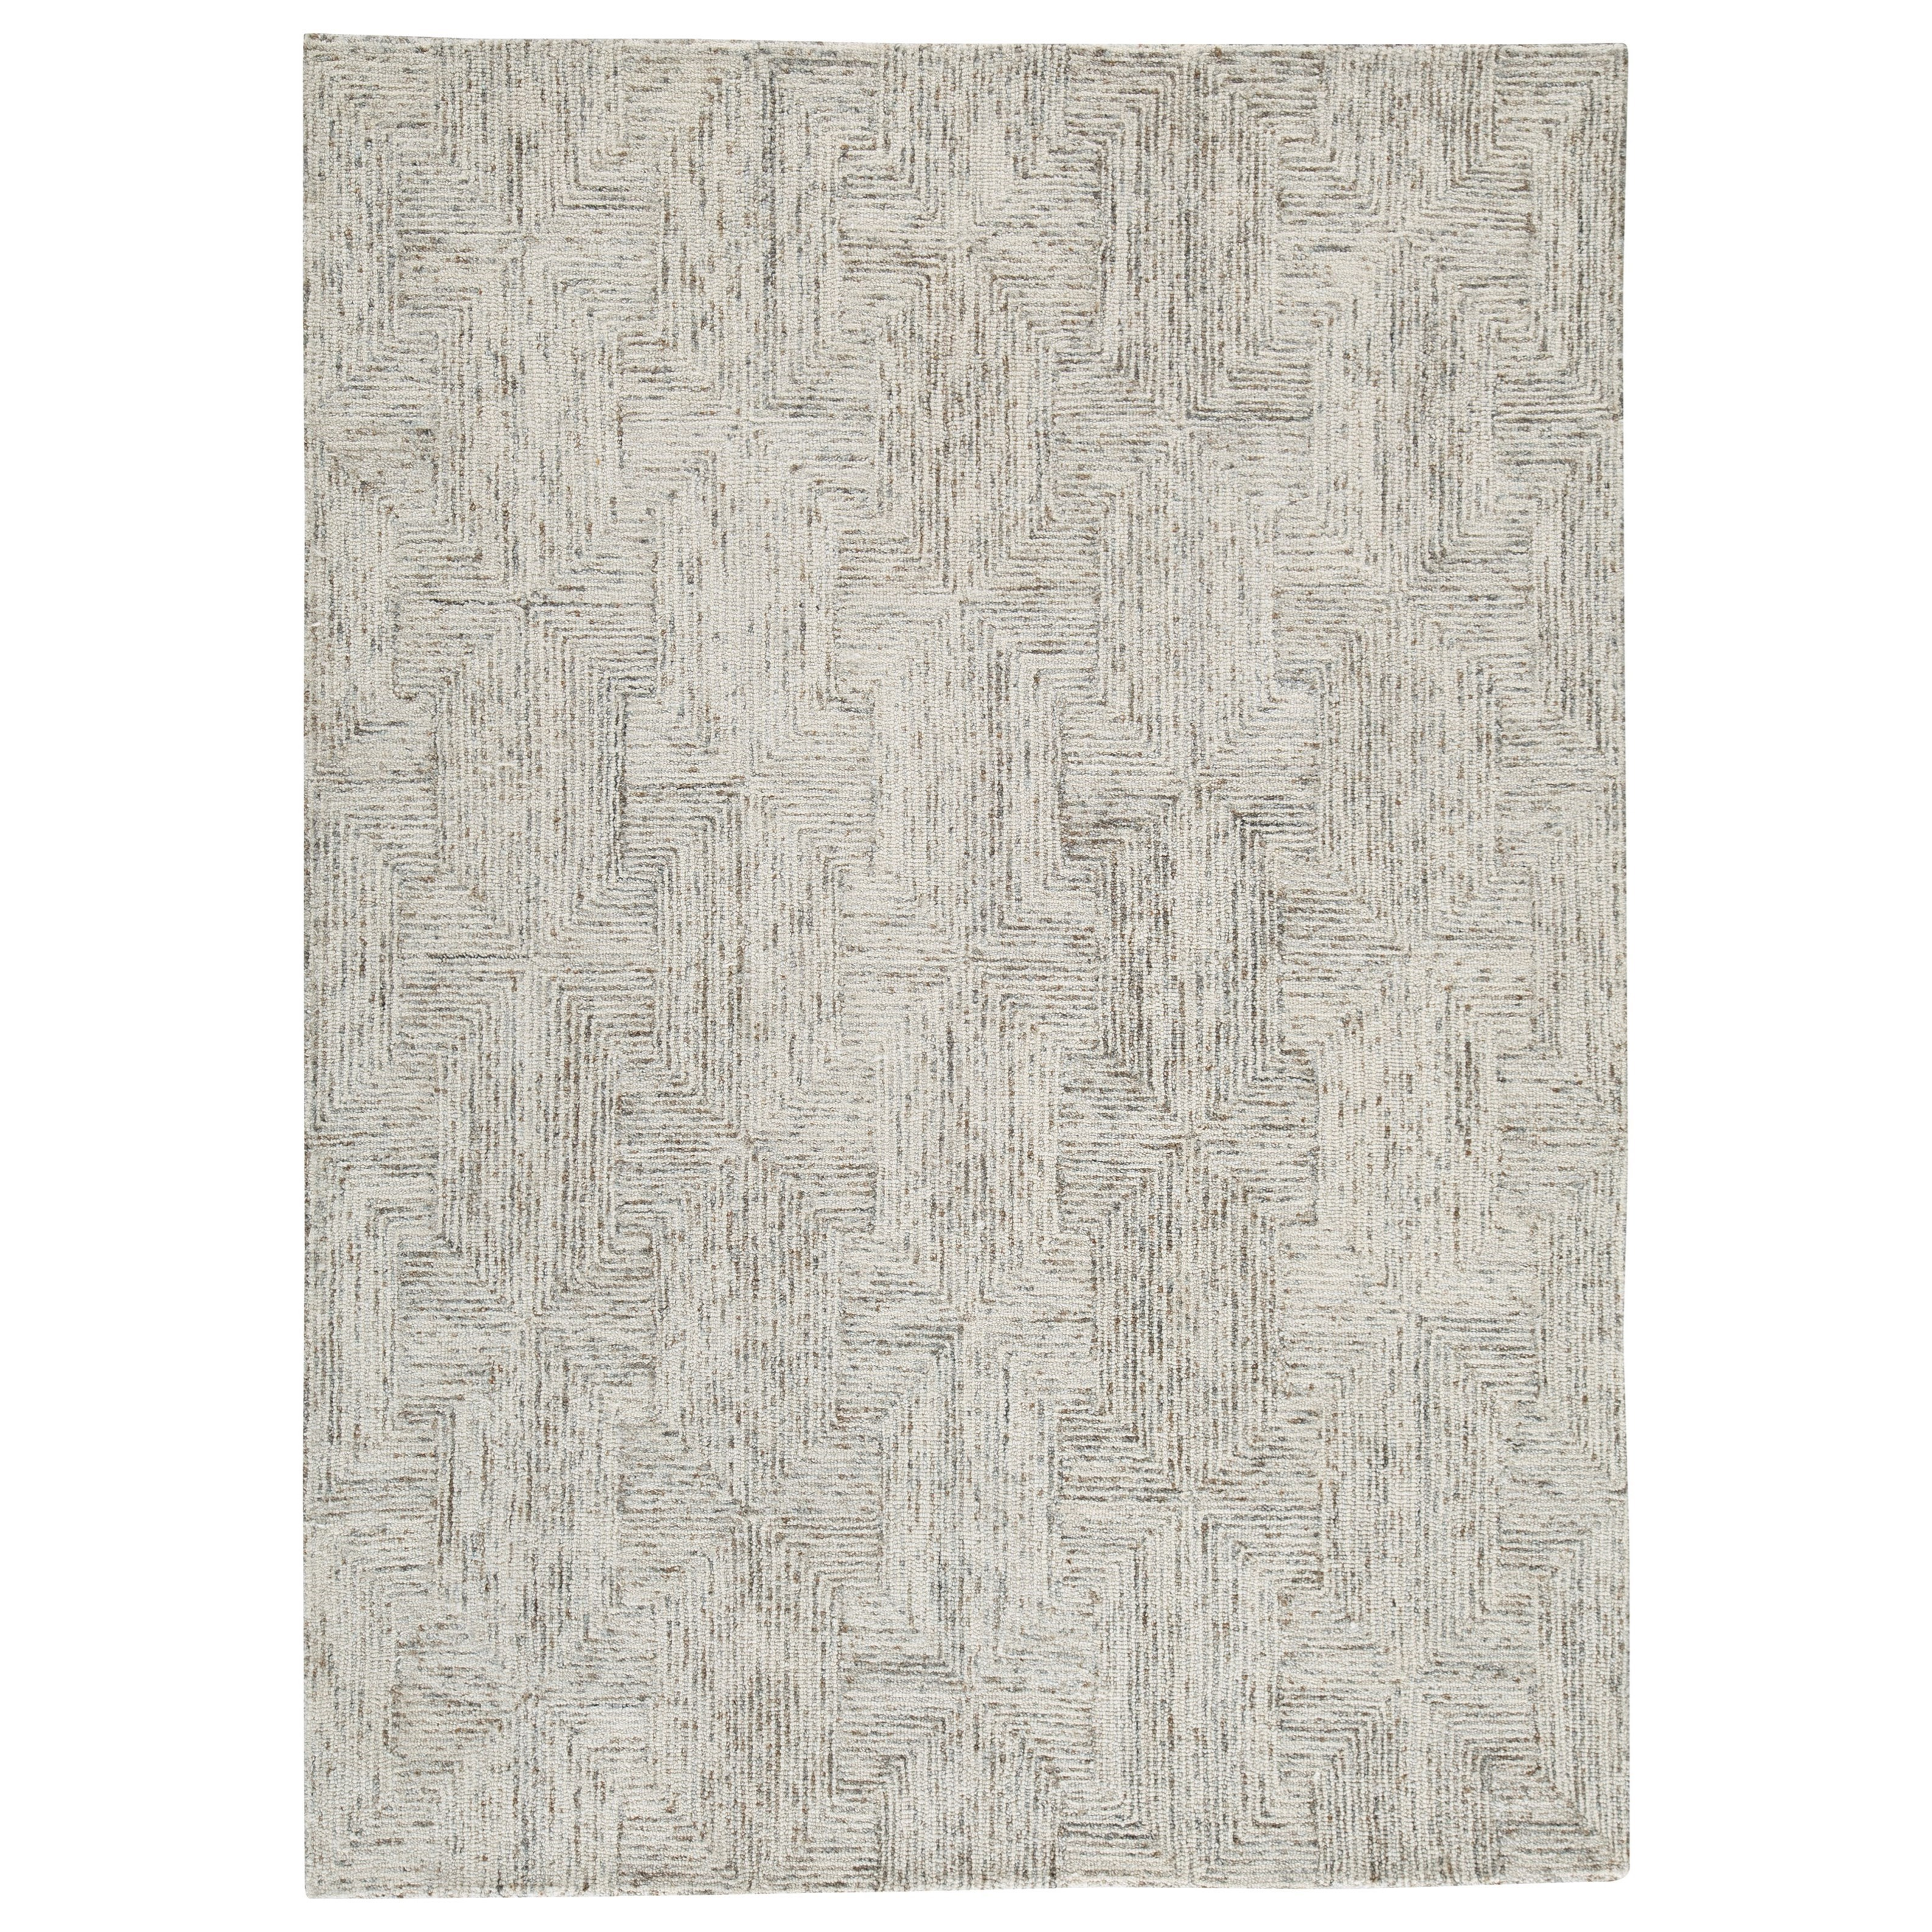 Contemporary Area Rugs Caronwell Ivory/Brown/Gray Large Rug by Signature Design by Ashley at Northeast Factory Direct